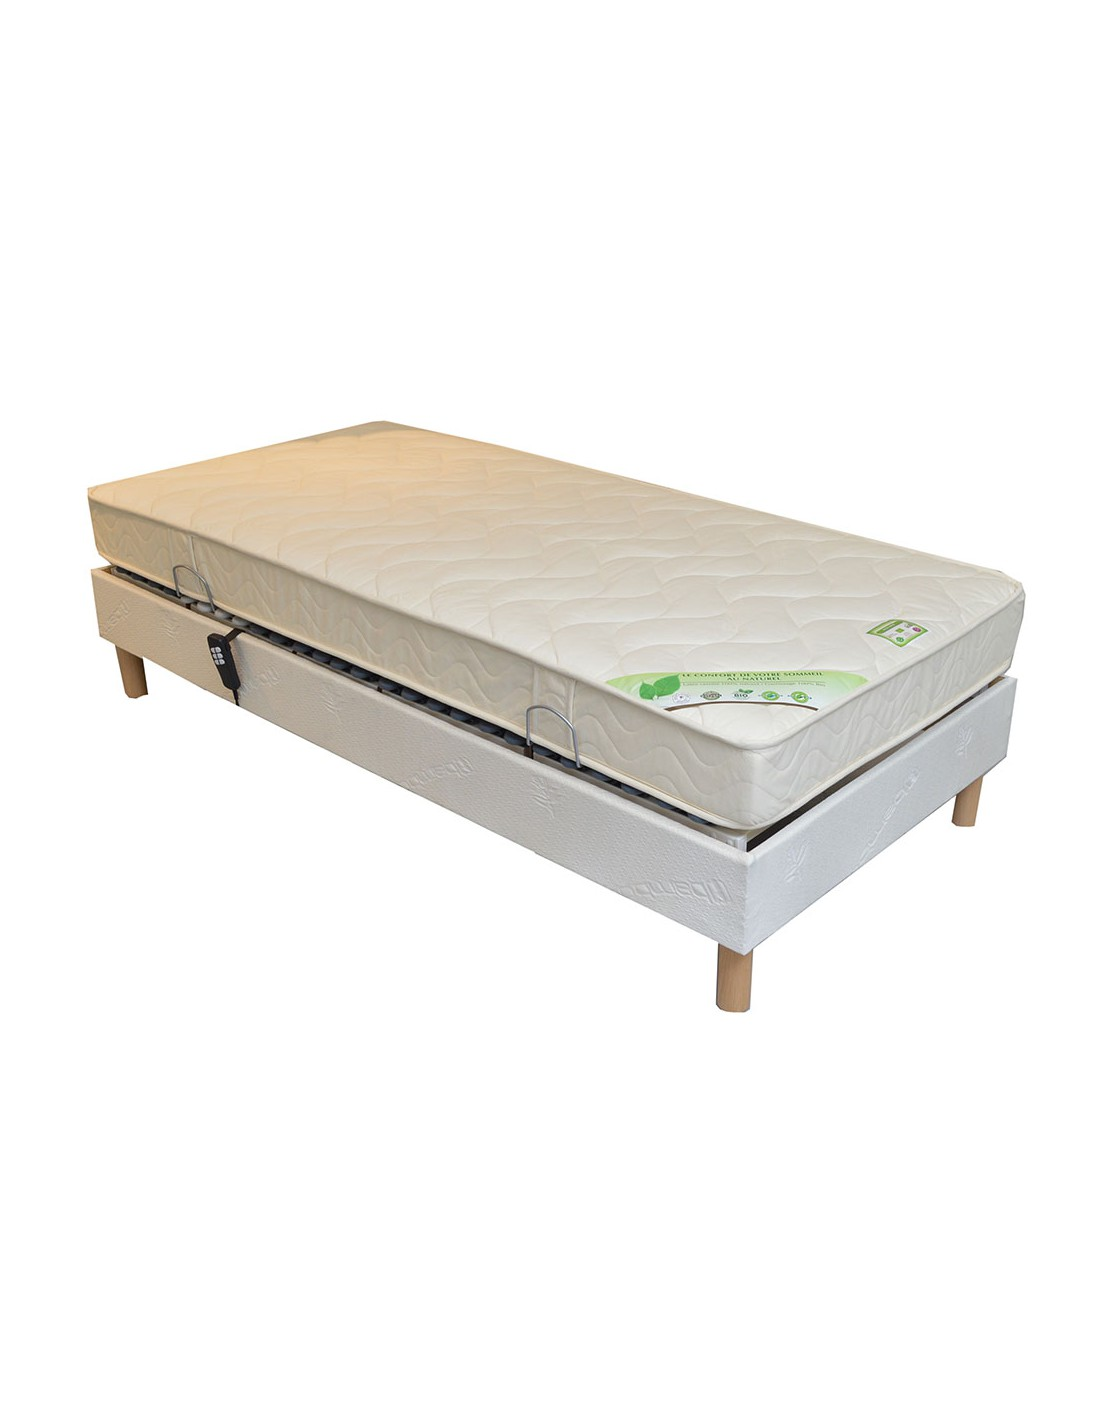 matelas ressorts ensachs et latex cosmos good matelas avec ressort matelas ressorts ensachs x. Black Bedroom Furniture Sets. Home Design Ideas